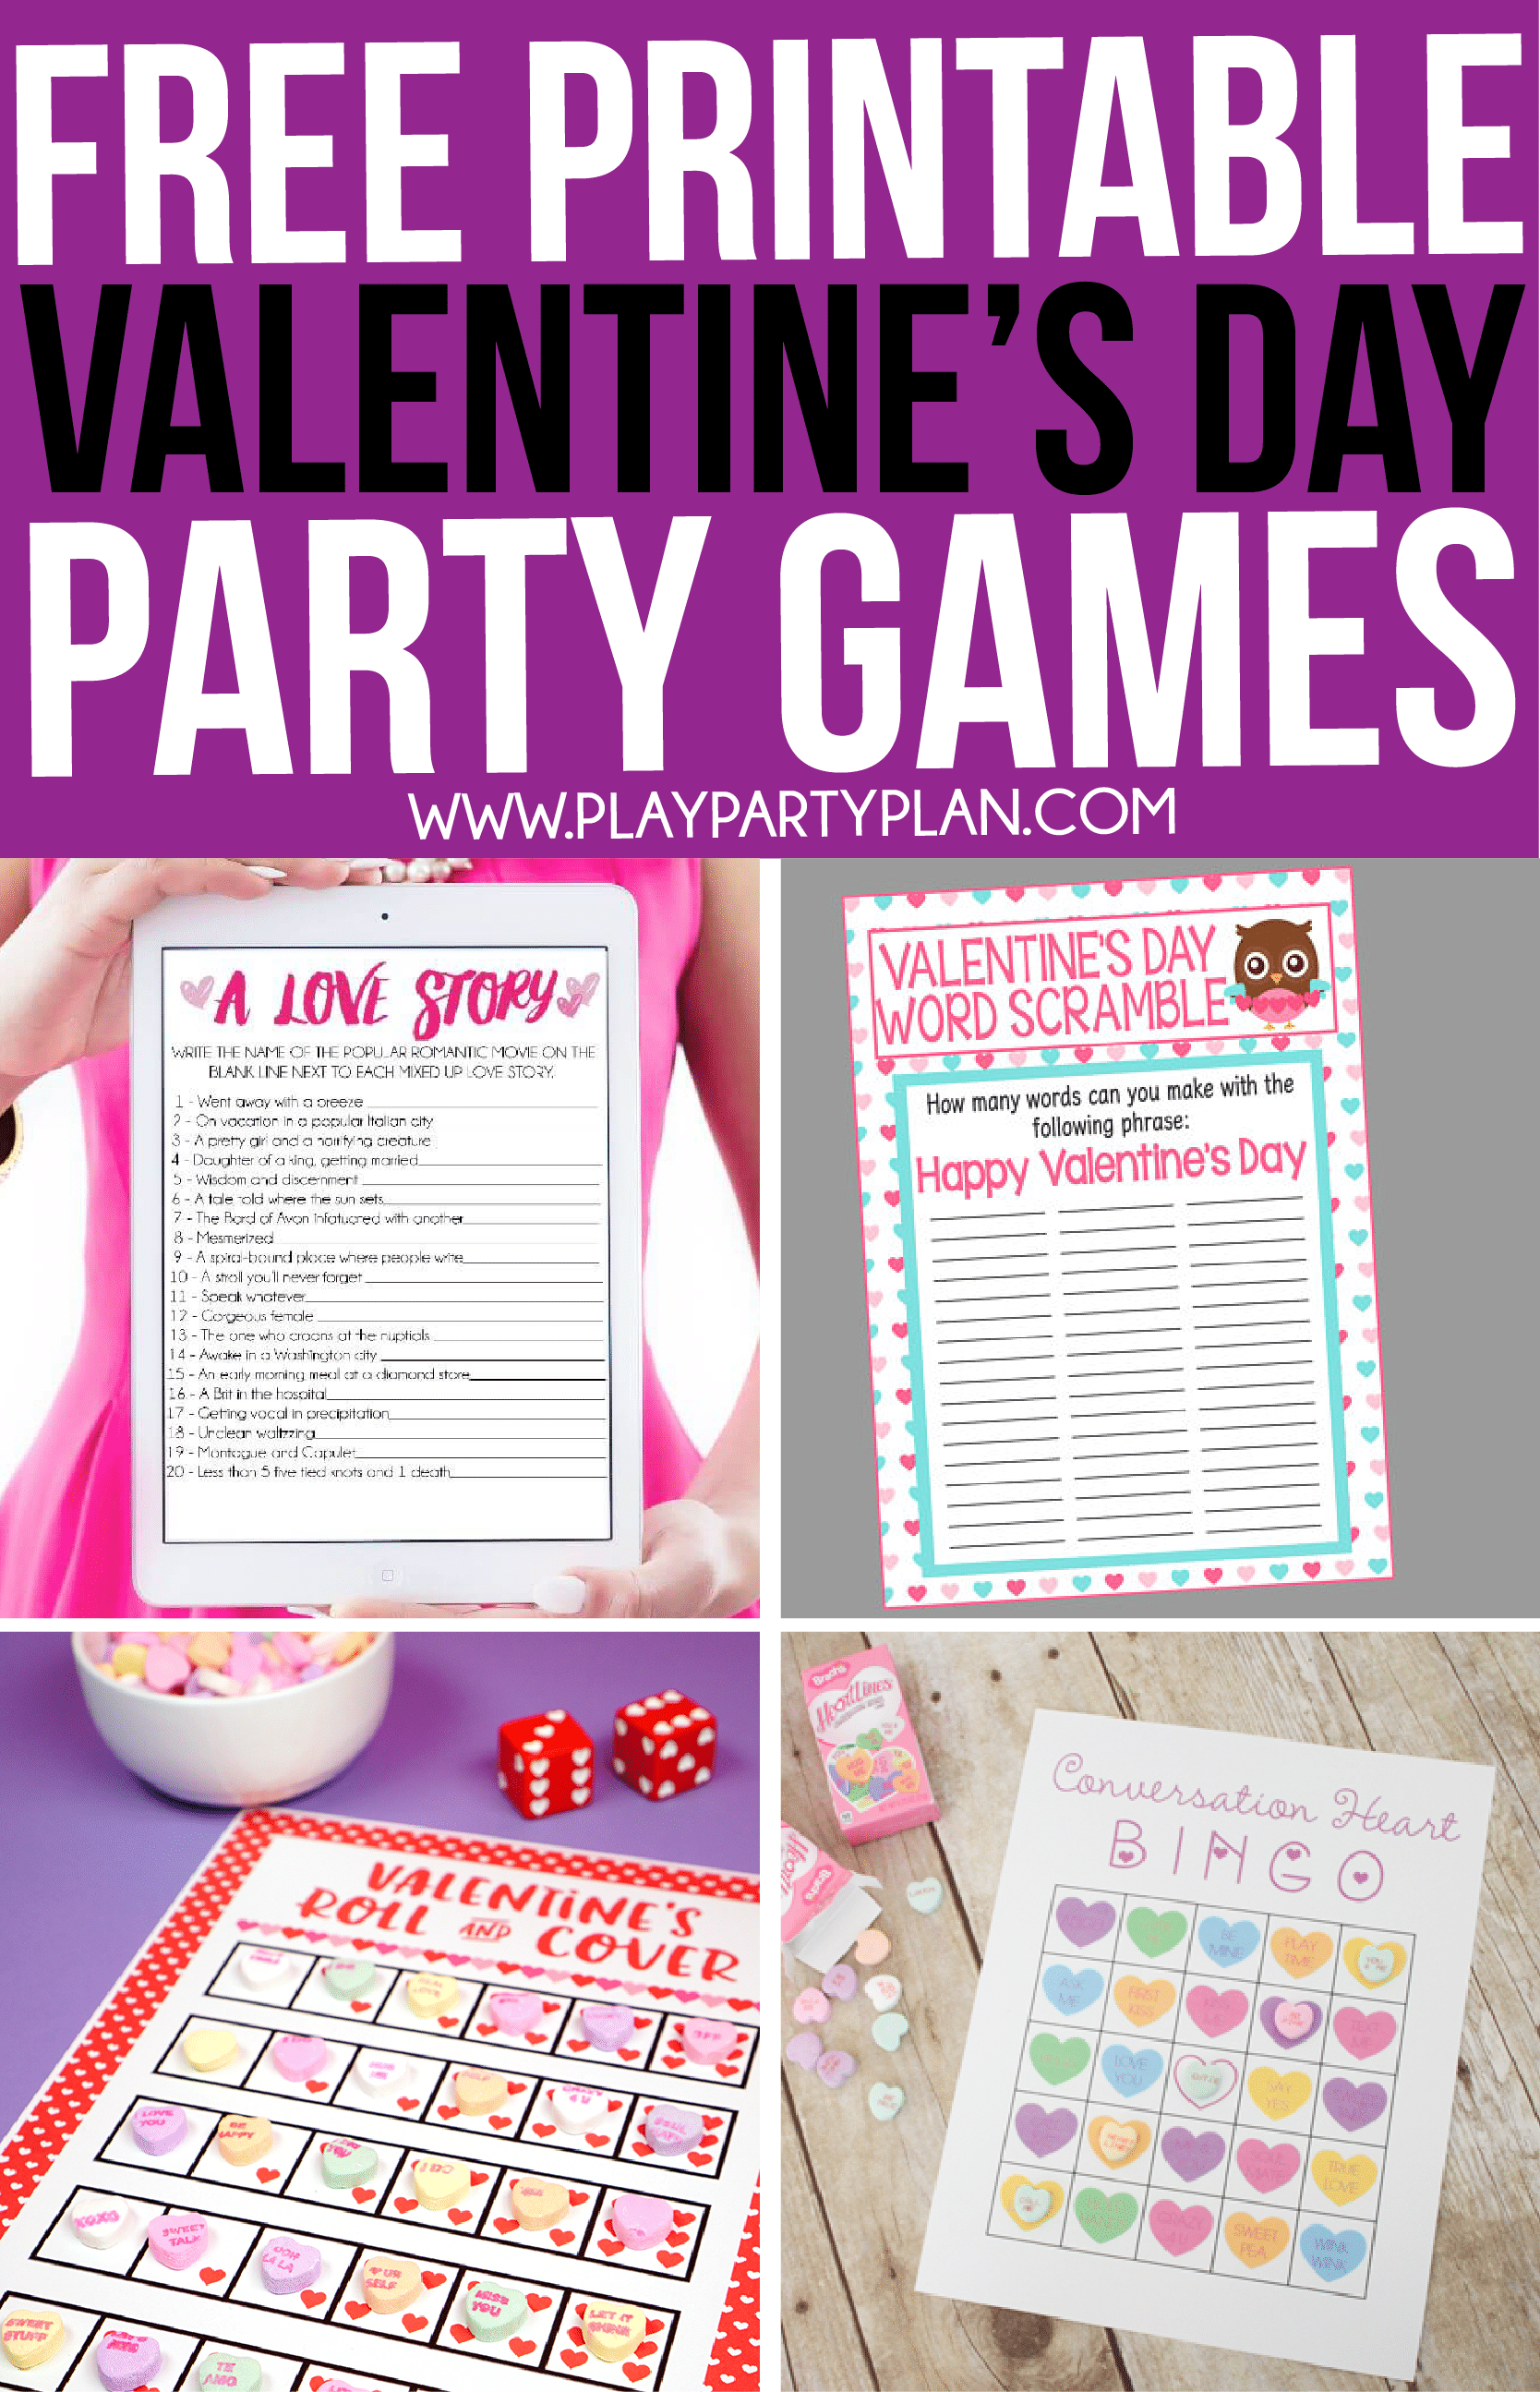 30 Valentine's Day Games Everyone Will Absolutely Love - Play Party Plan - Free Printable Valentine Games For Adults